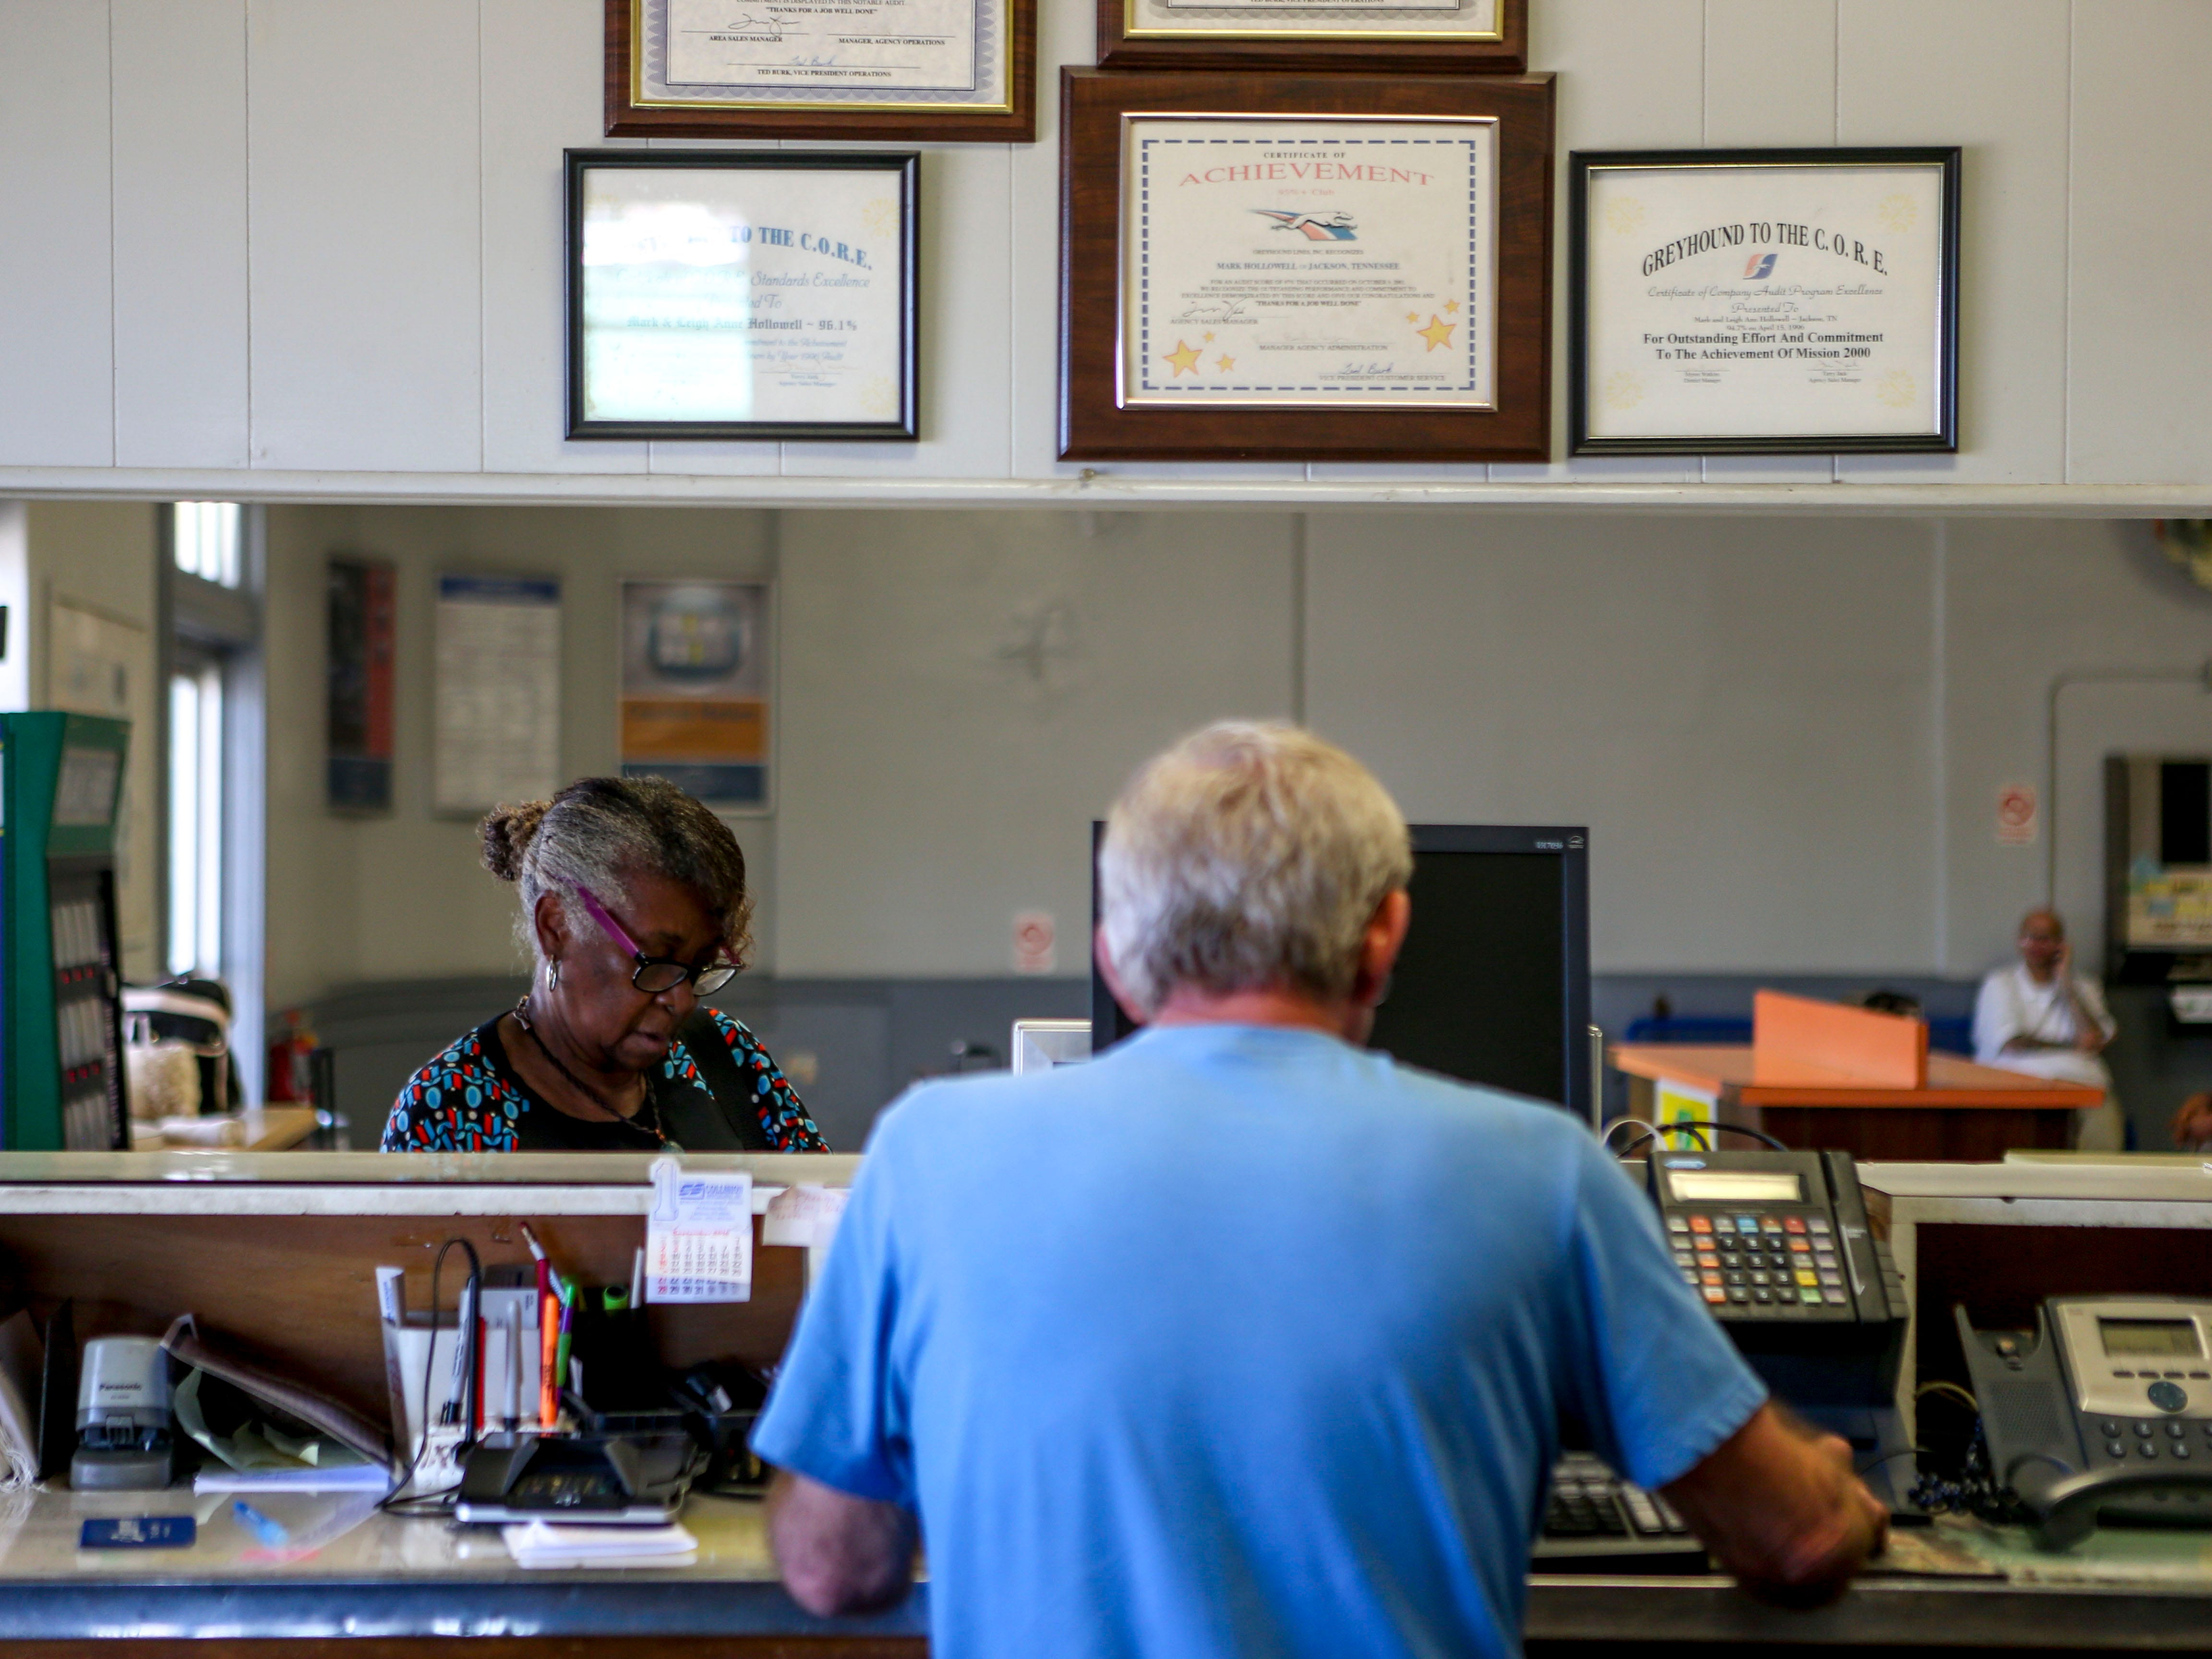 Mark Hollowell serves a customer buying a bus ticket at the Greyhound Bus Station in Jackson, Tenn., on Wednesday, Sept. 12, 2018.